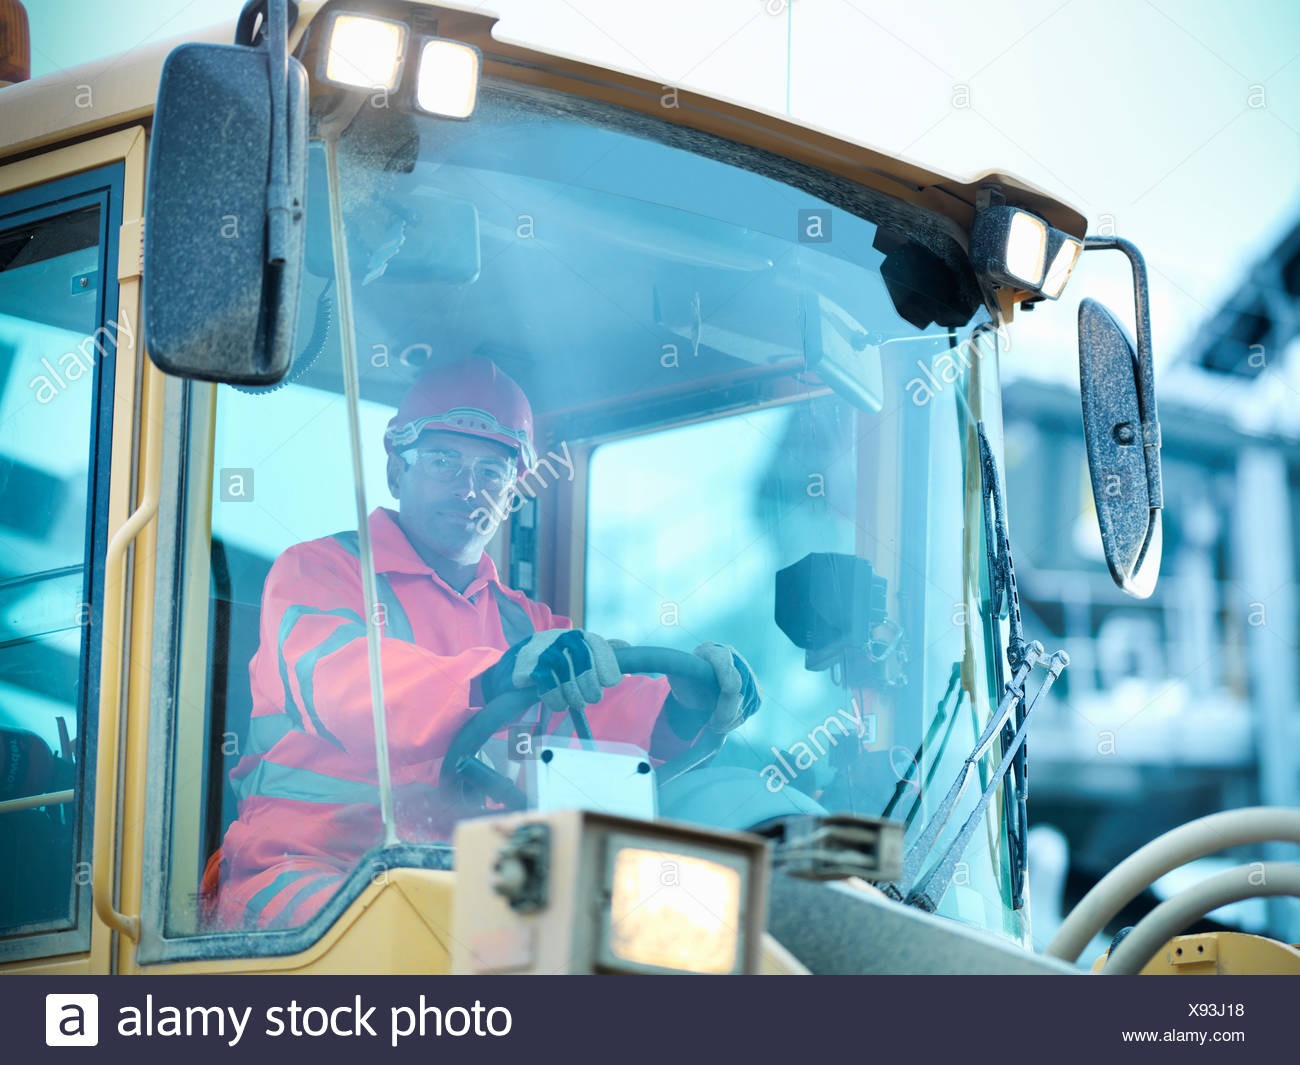 Worker driving industrial digger on site - Stock Image